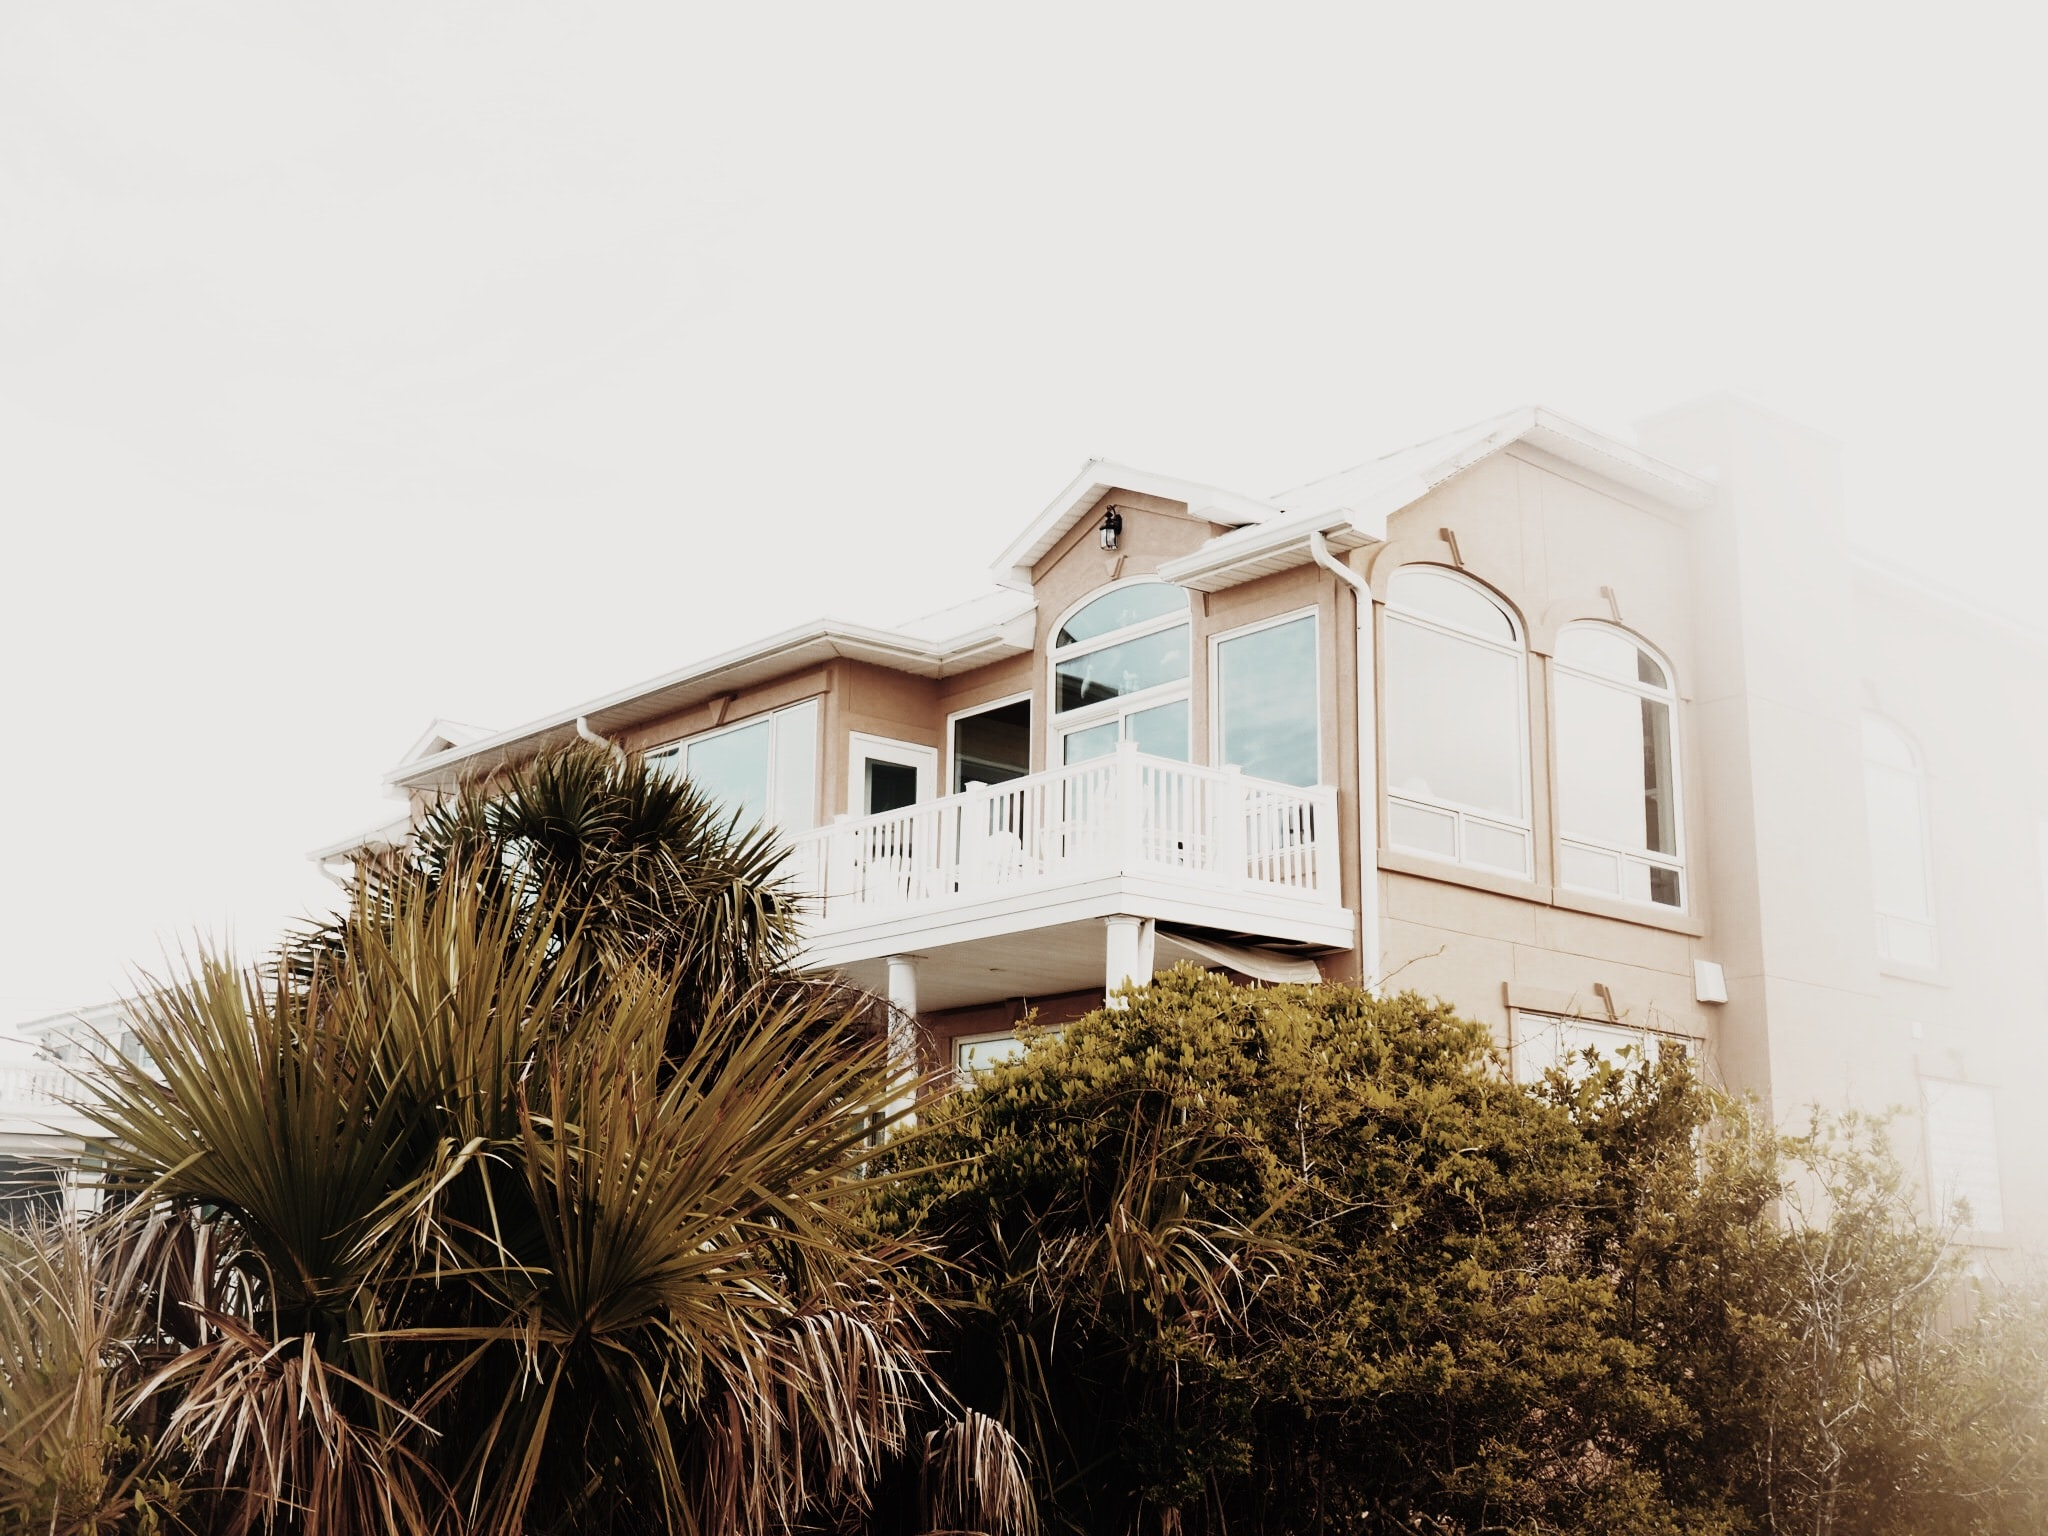 A beach house on Tybee Island surrounded by palm trees on a foggy day